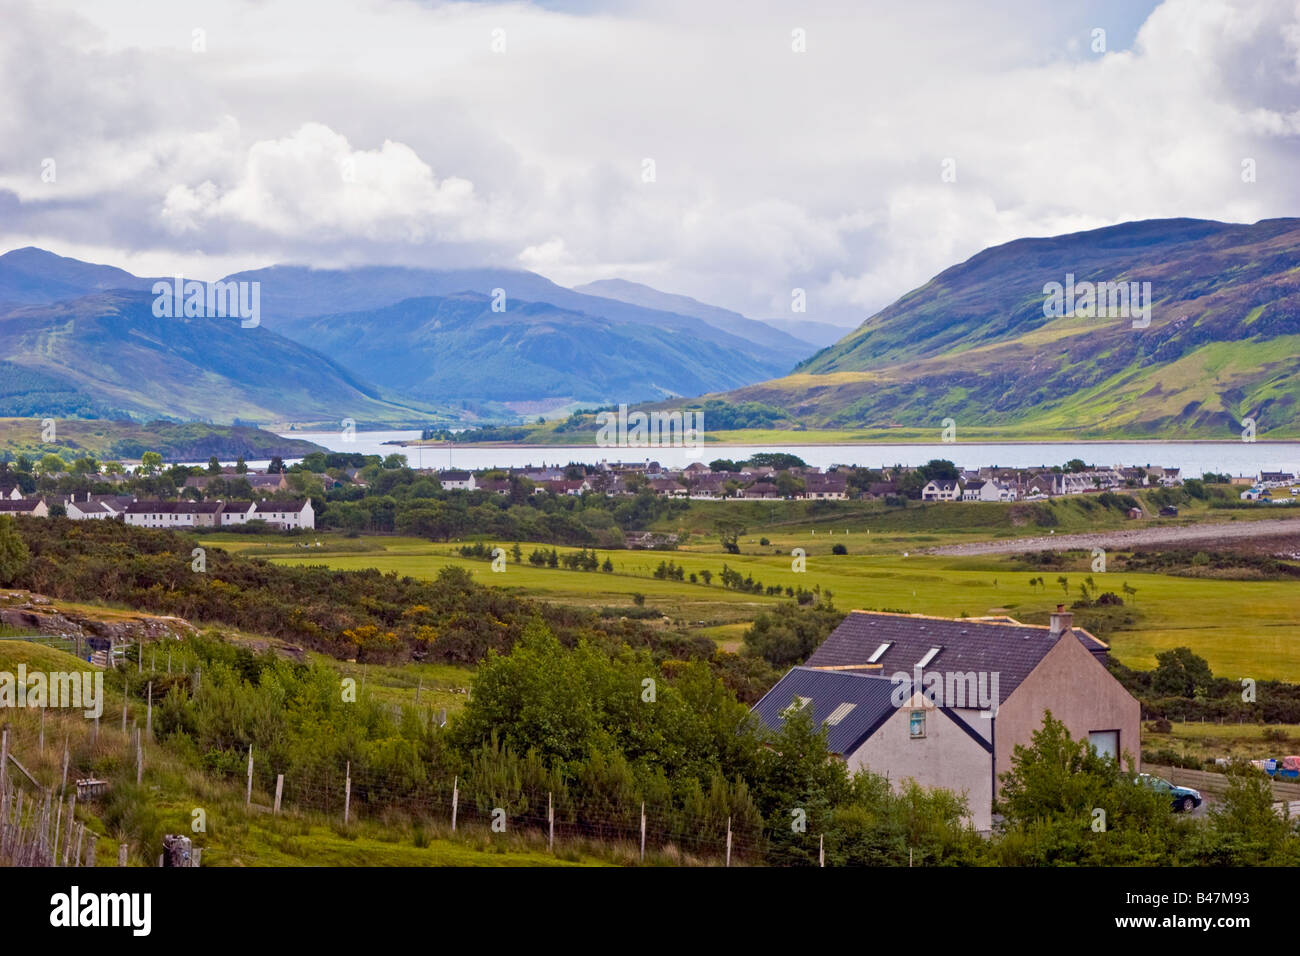 Ullapool Loch Broom Wester Ross, Highlands Scotland United Kingdom Great Britain UK 2008 - Stock Image